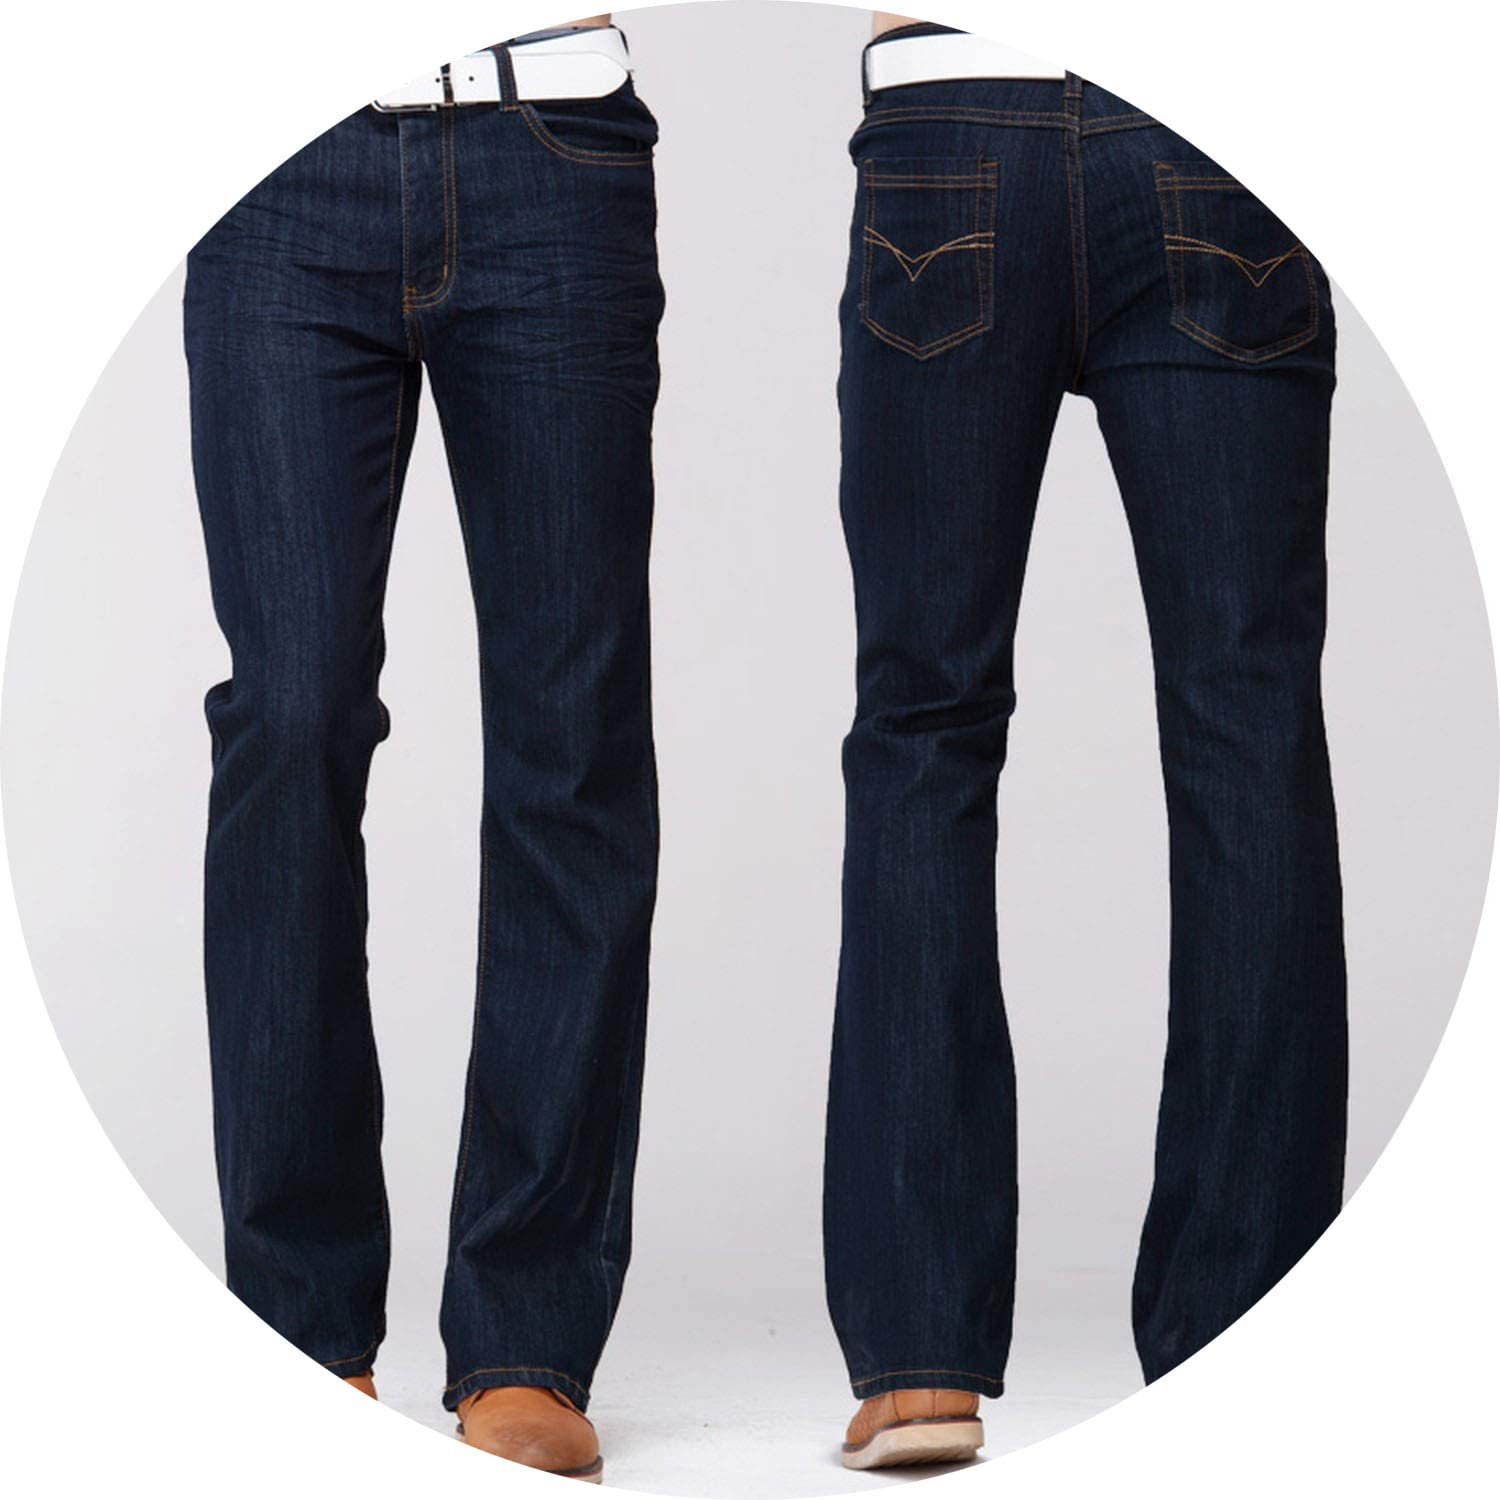 Men/'s Pants Jeans Boot Cut Leg Slightly Flared Slim Fit Stretch Fabric Trousers